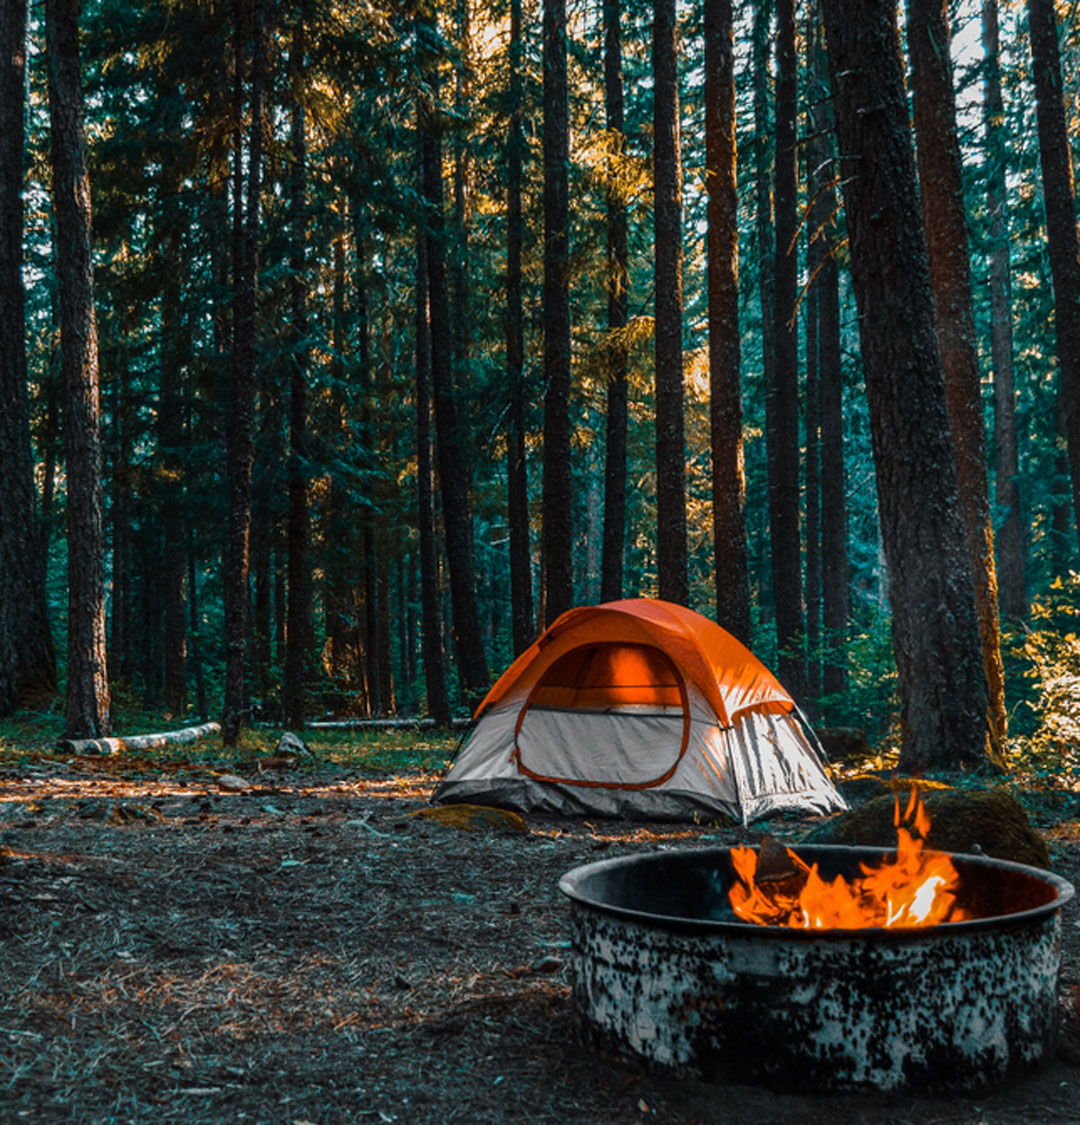 Tent pitched in the woods, by a campfire, at Middle Fork Campground in Bothell, WA.